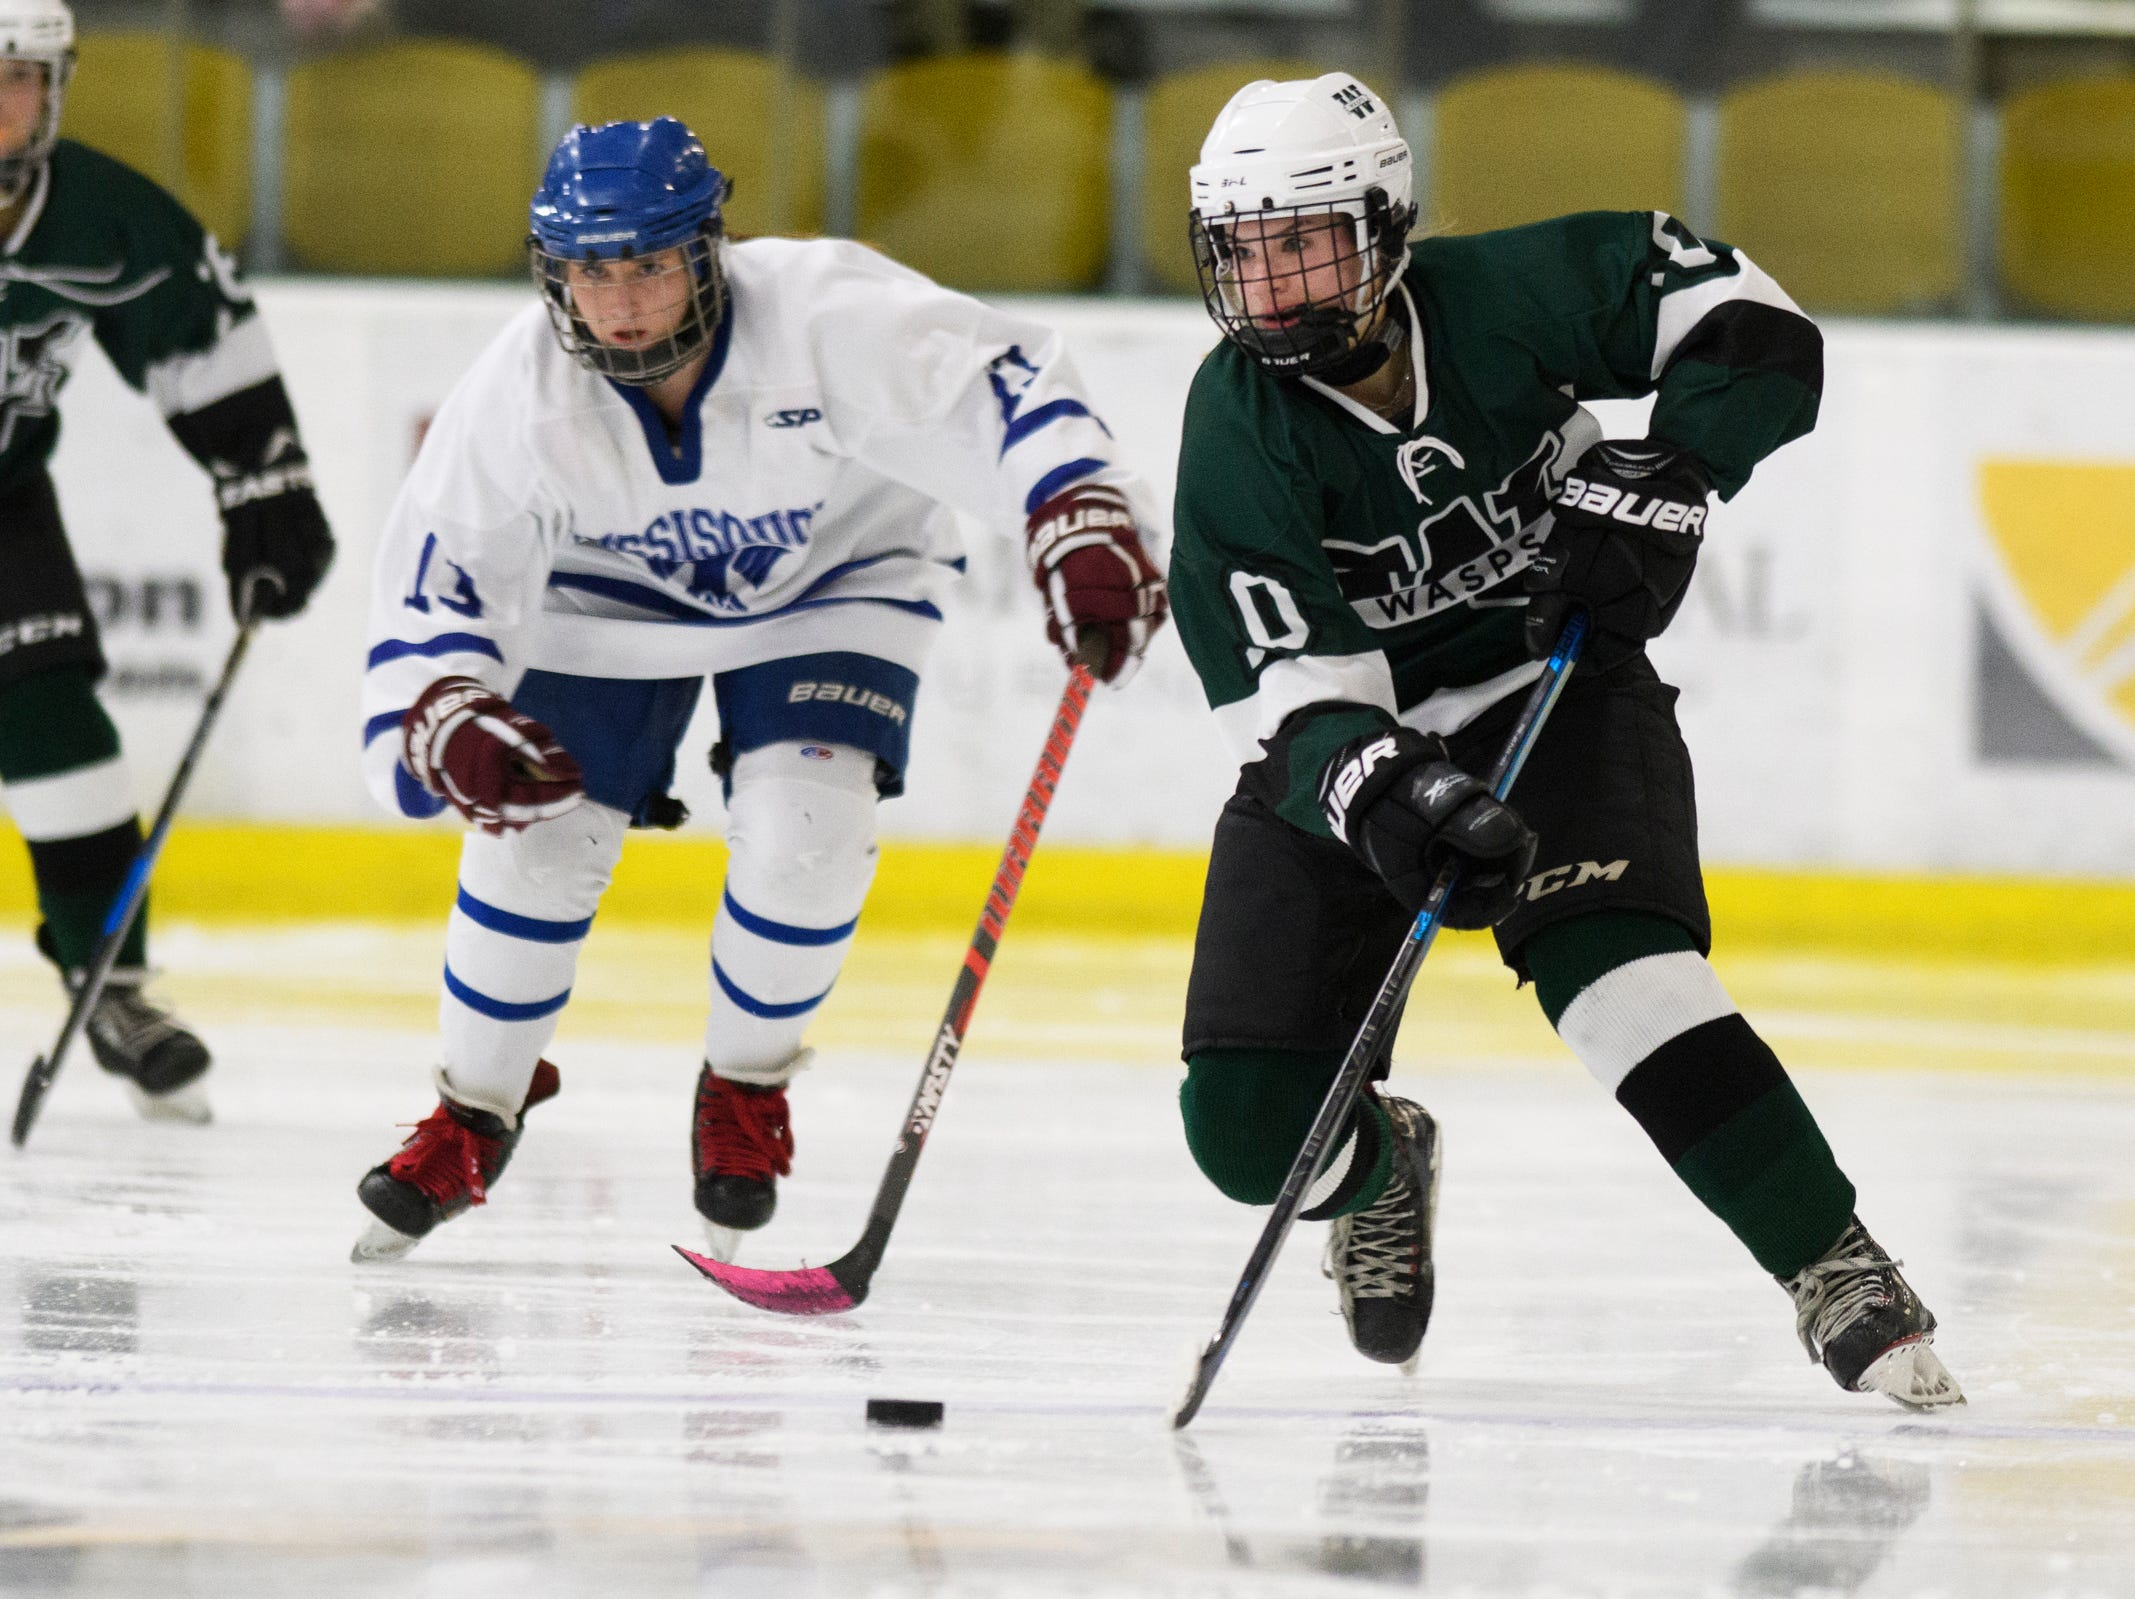 Woodstock's Allie Cimis (10) skates down the ice with eh puck past Missisquoi's Reghan Overton (13) during the DII girls hockey championship game between the Woodstock Wasps and the Missisquoi Thunderbirds at Gutterson Field House on Thursday night March 14, 2019 in Burlington, Vermont.